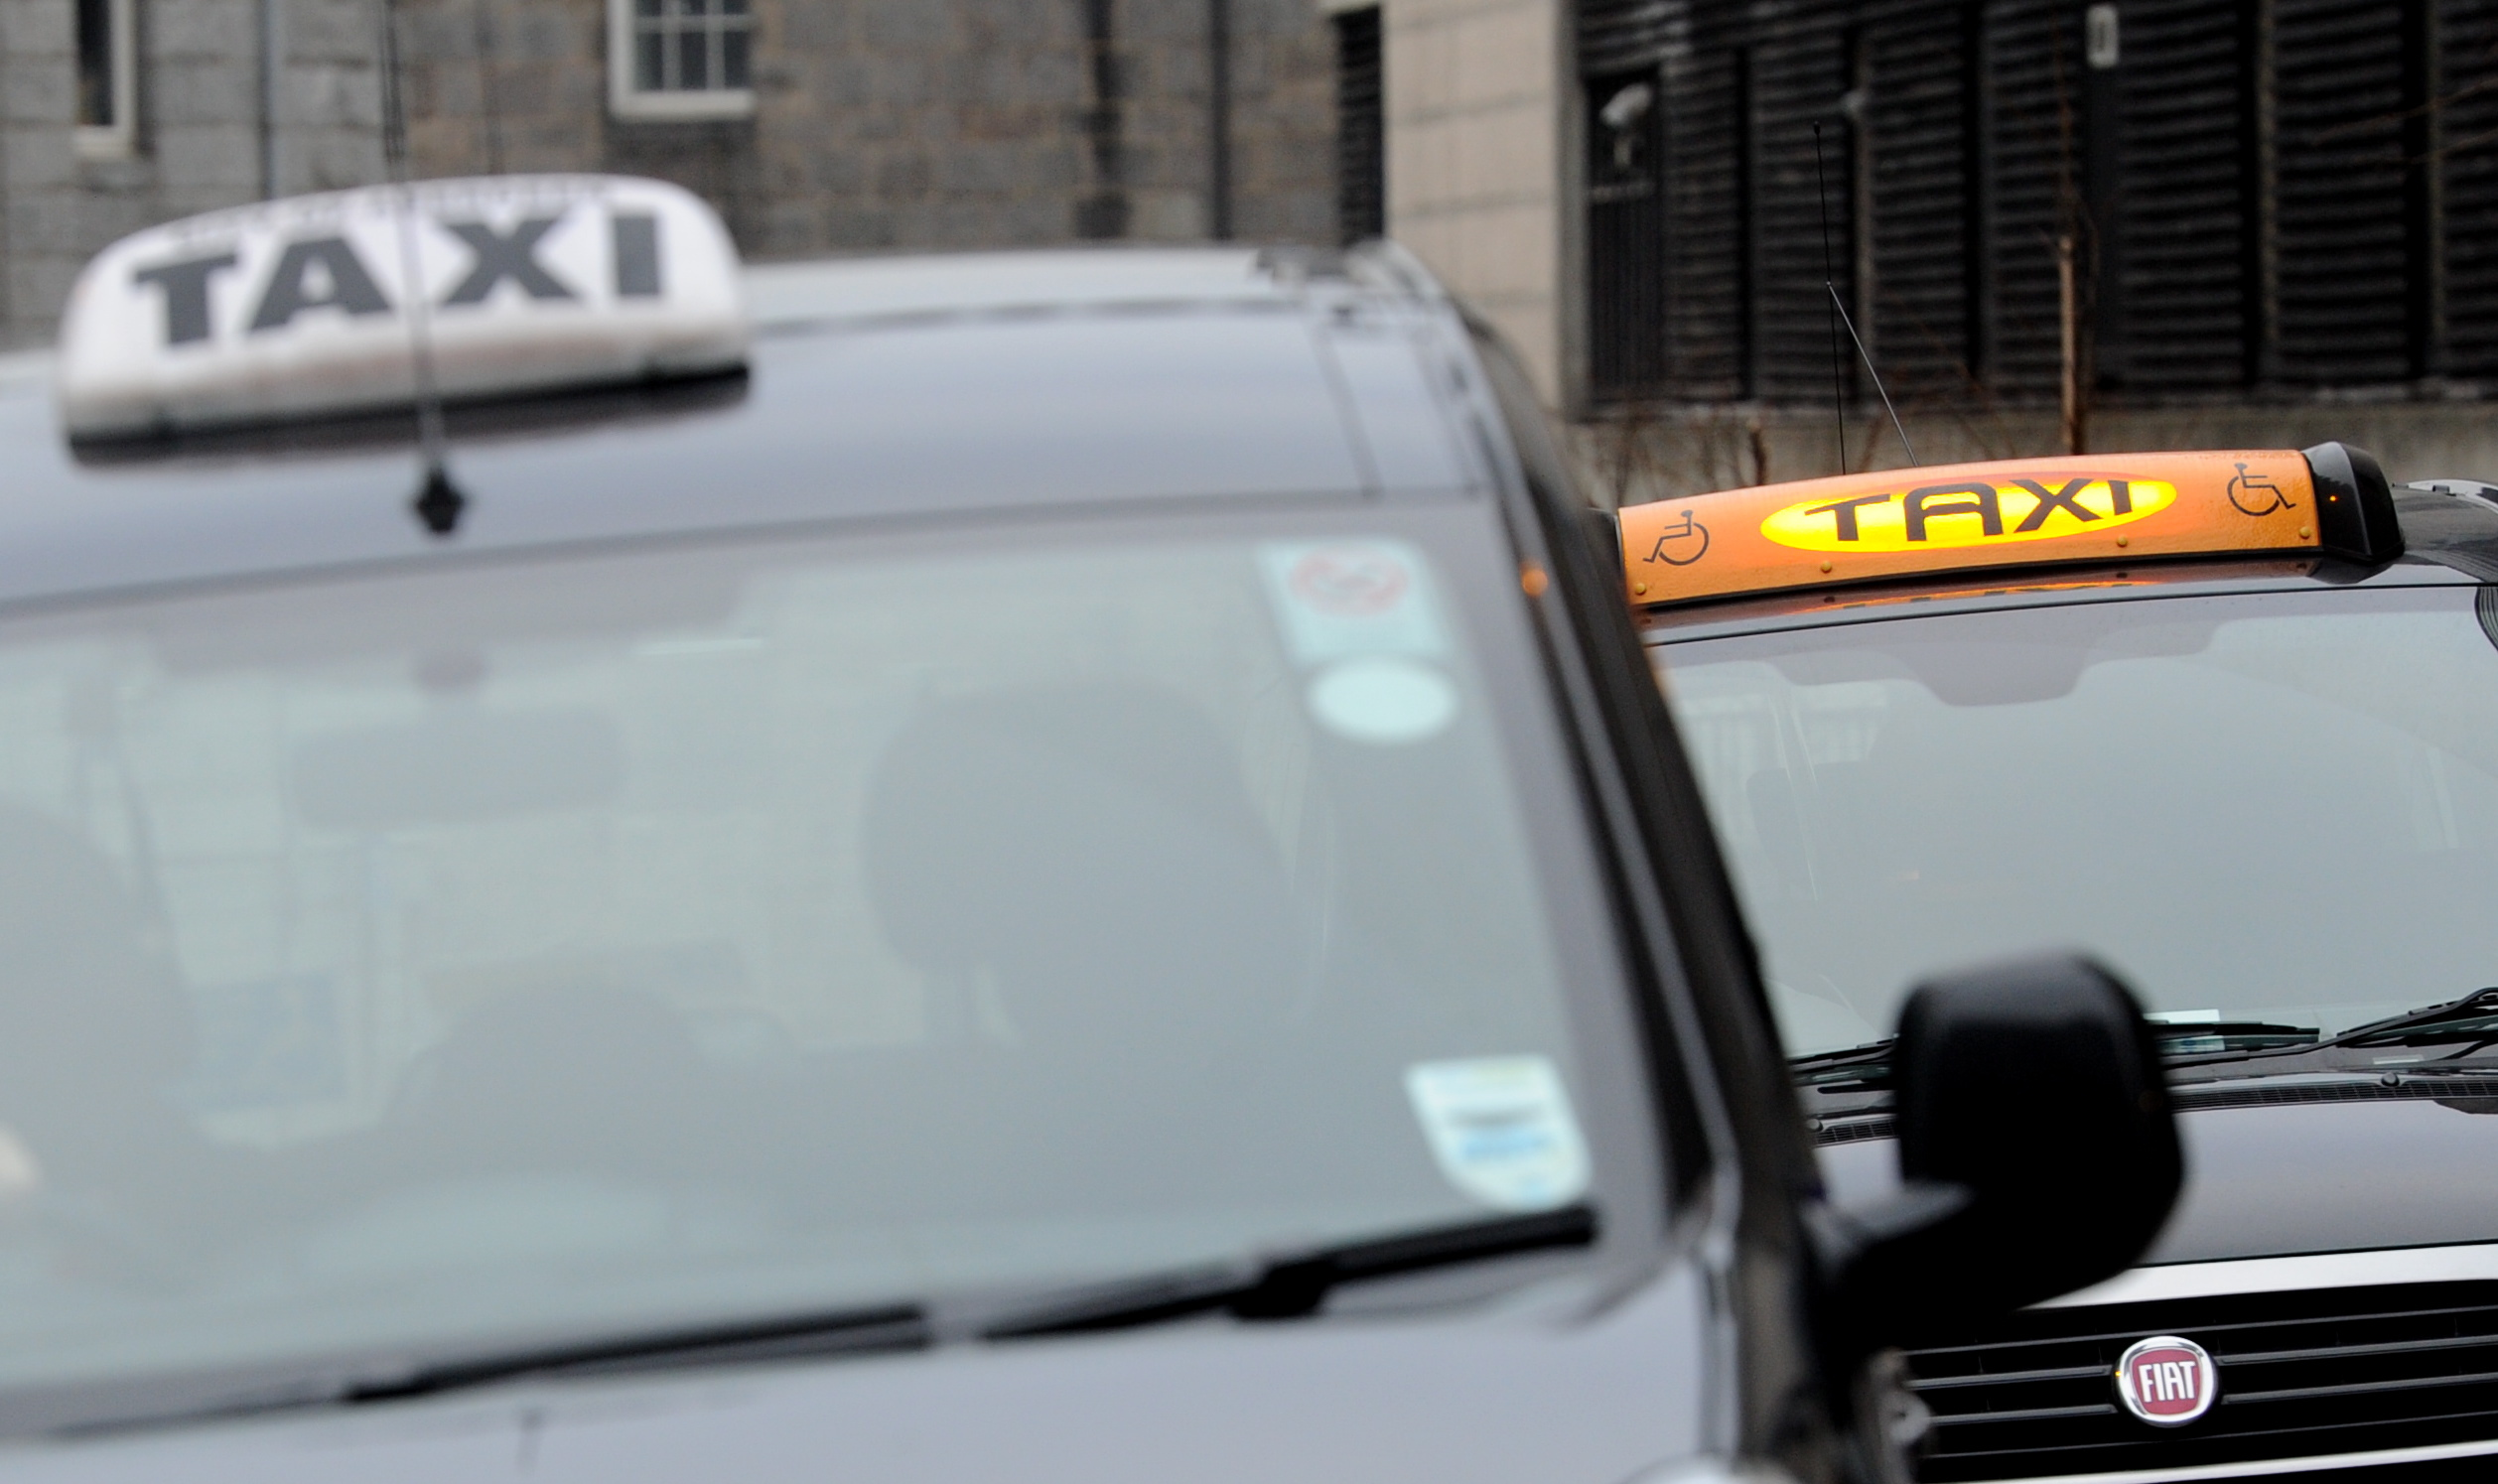 Taxi drivers in Aberdeen could have to undertake new customer service training.